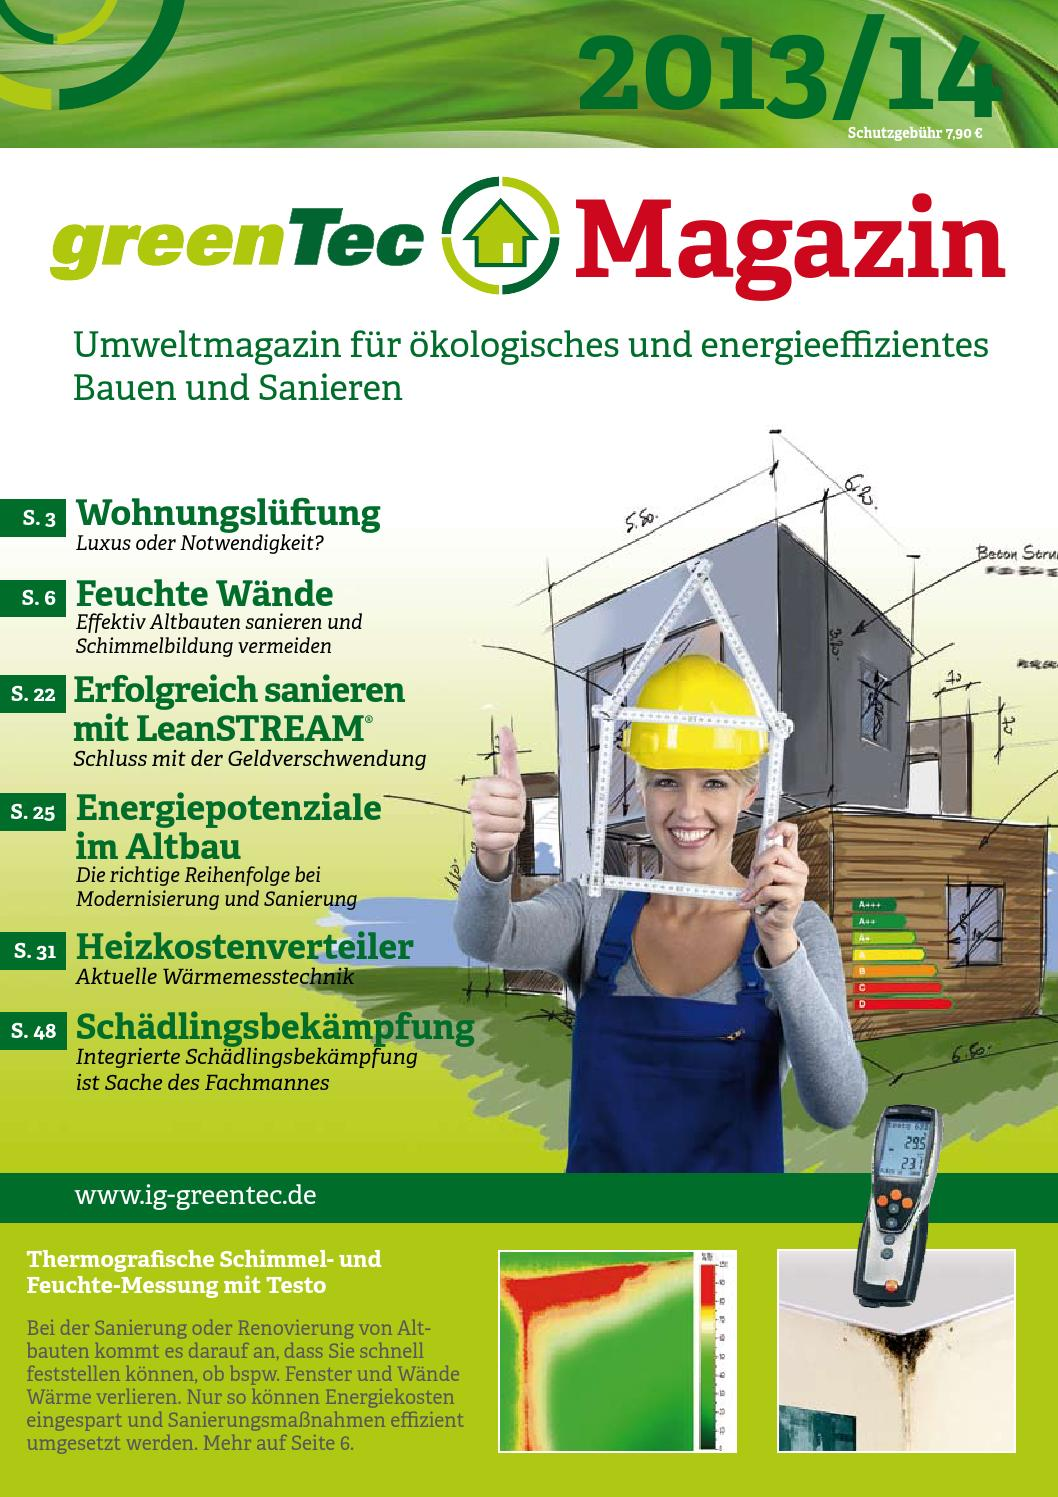 greentec magazin 2013 14 by wzo verlags gmbh issuu. Black Bedroom Furniture Sets. Home Design Ideas